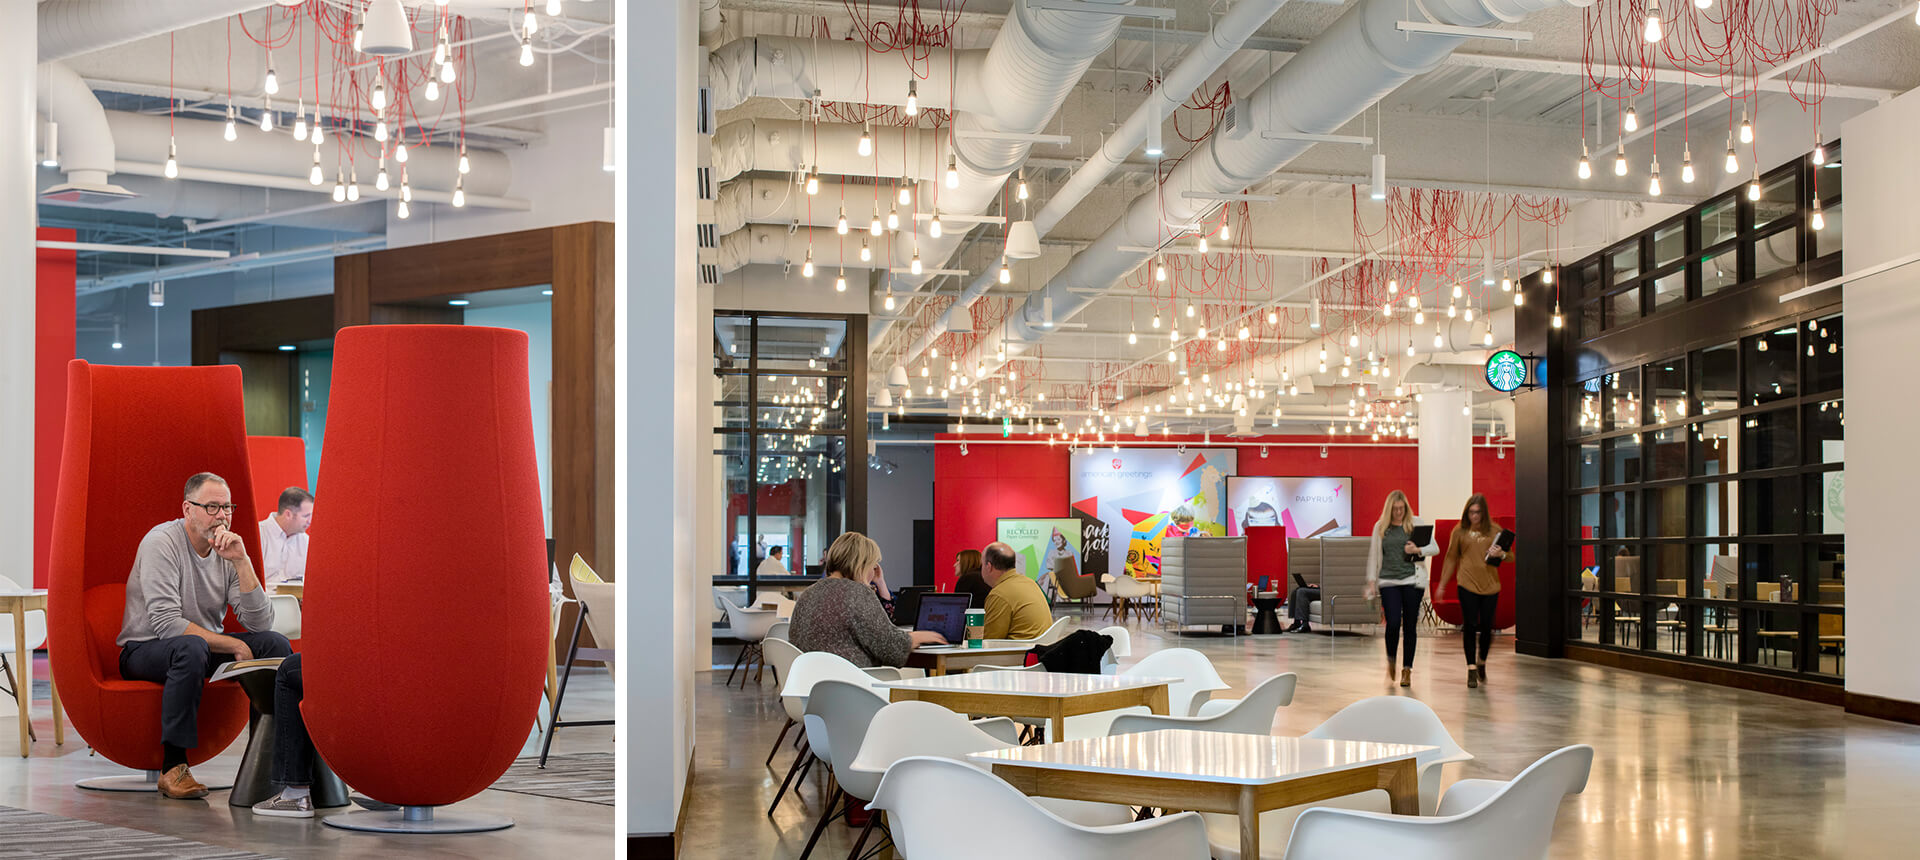 American greetings creative studio and world headquarters callisonrtkl american greetings creative studio and world headquarters kristyandbryce Choice Image